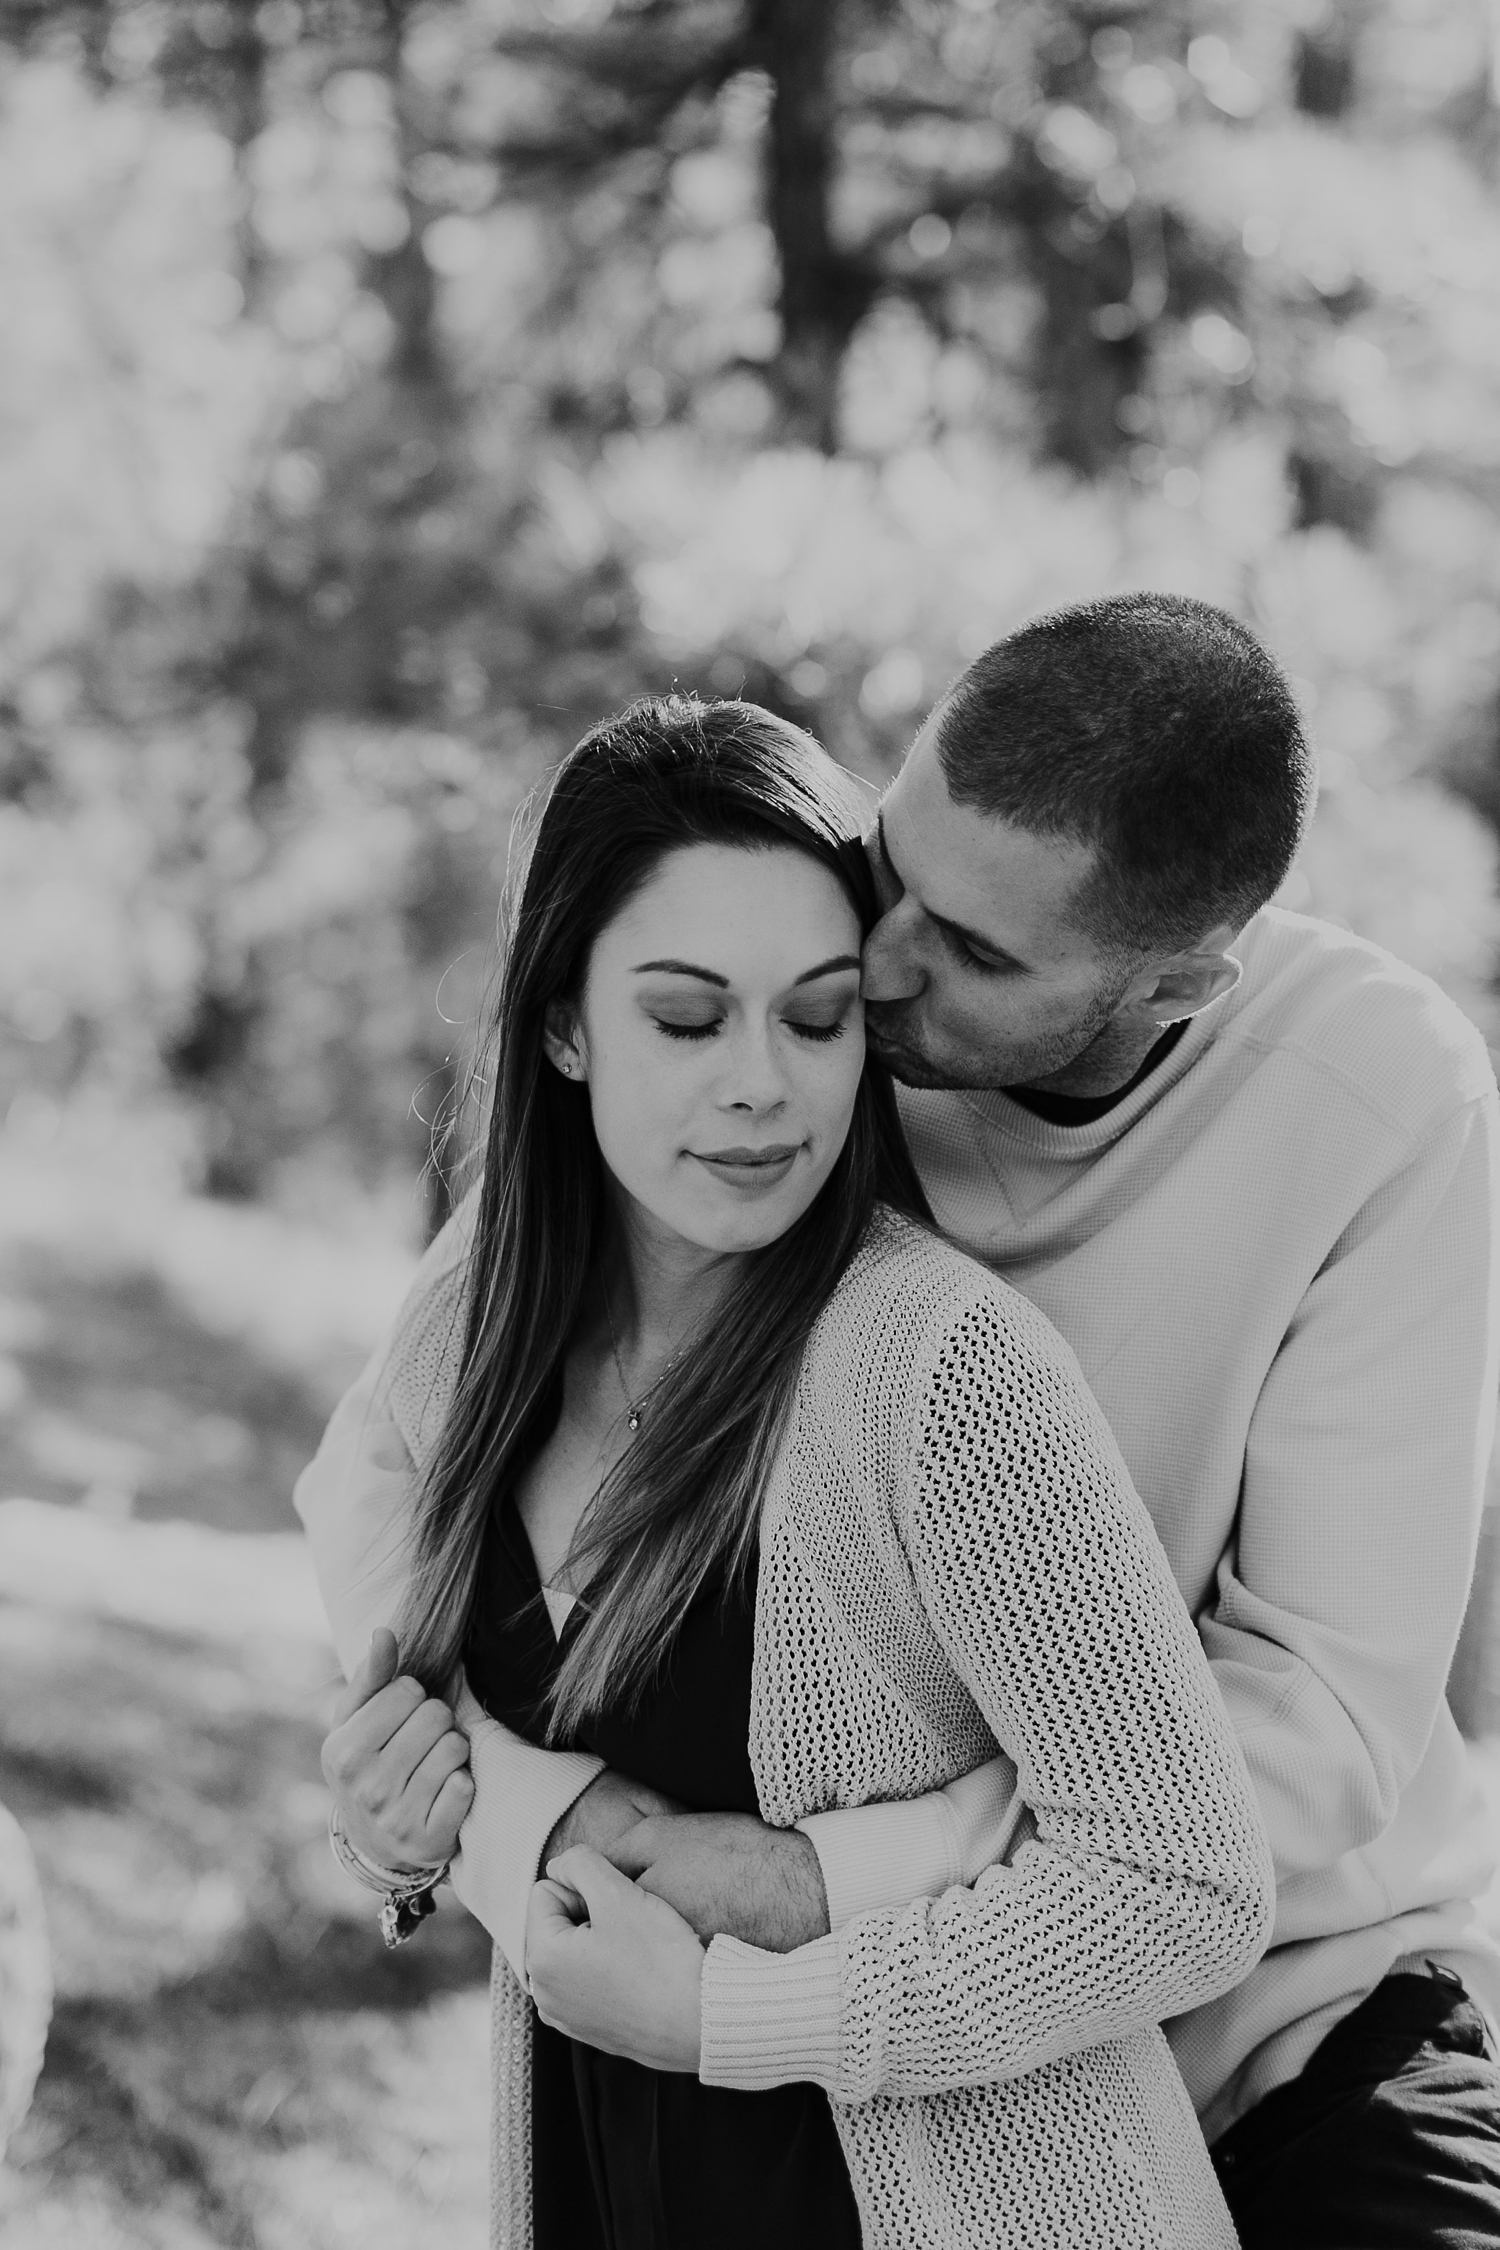 Alicia+lucia+photography+-+albuquerque+wedding+photographer+-+santa+fe+wedding+photography+-+new+mexico+wedding+photographer+-+albuquerque+winter+engagement+session_0024.jpg